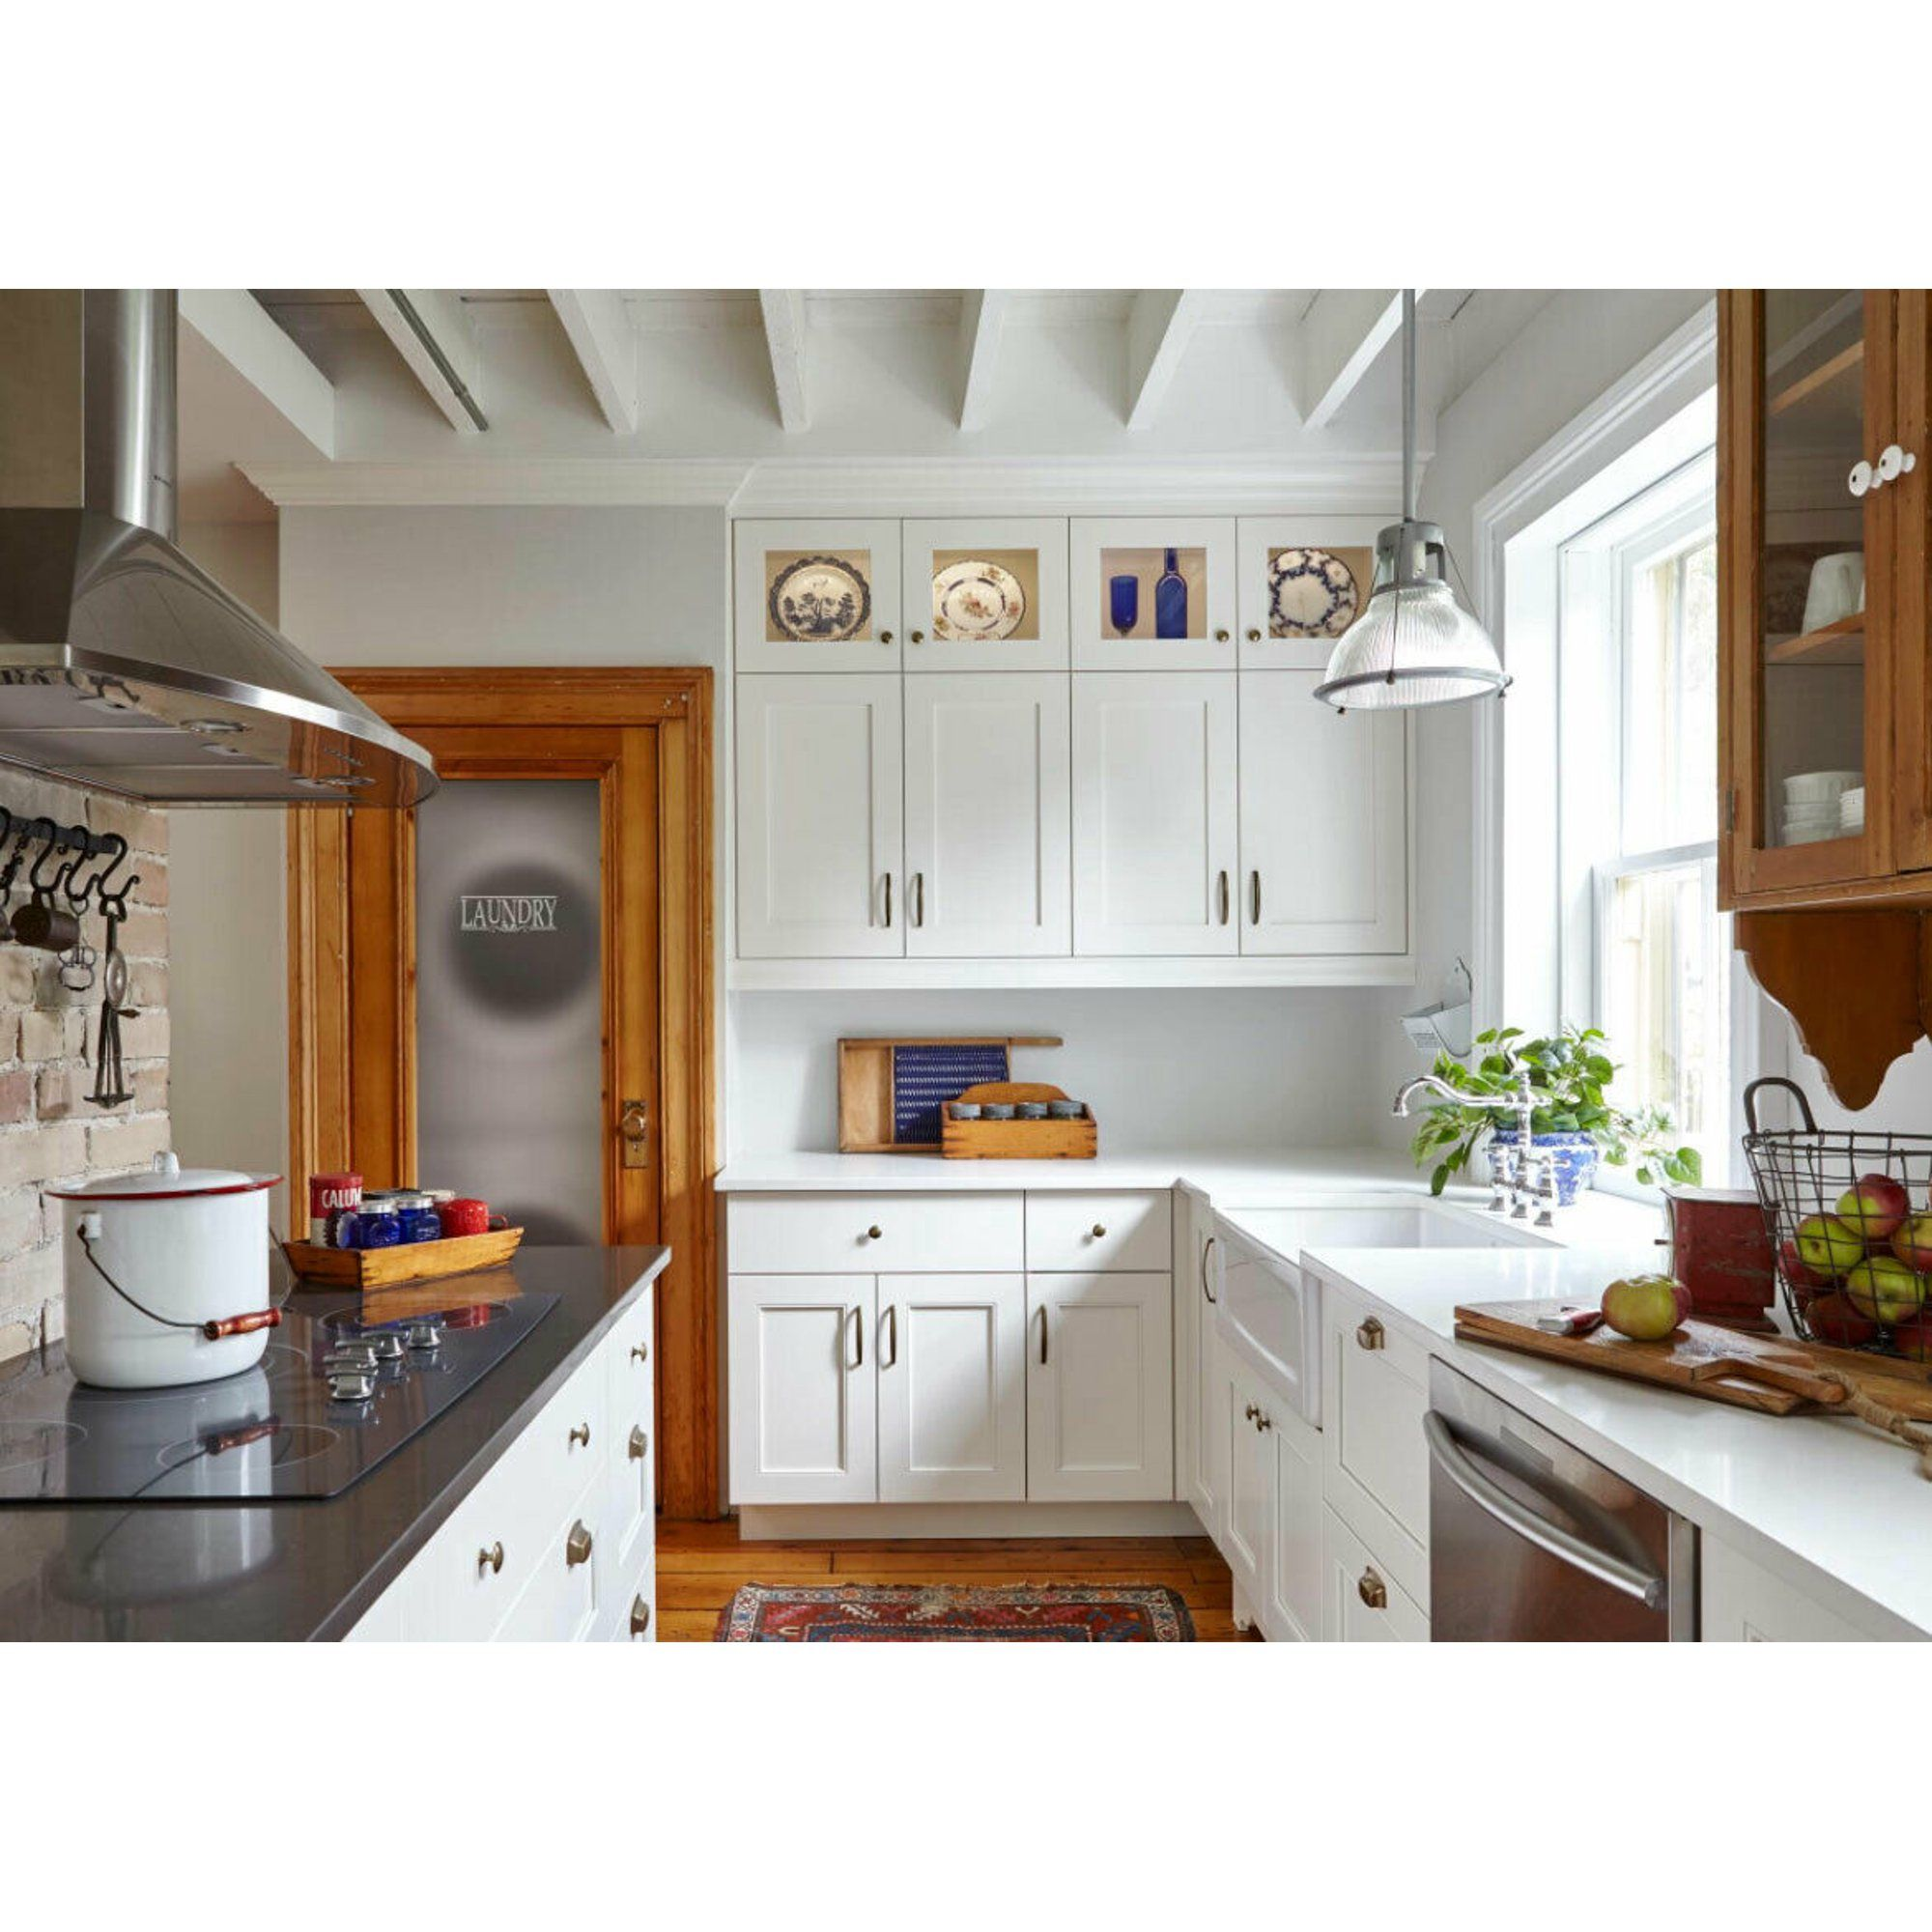 10 X10 Galaxy Cabinetry Rta White Bevel Shaker Kitchen Cabinets Solid Wood Doors Free 3d Design Walmart Com In 2020 White Shaker Kitchen Cabinets Solid Wood Kitchen Cabinets Shaker Kitchen Cabinets